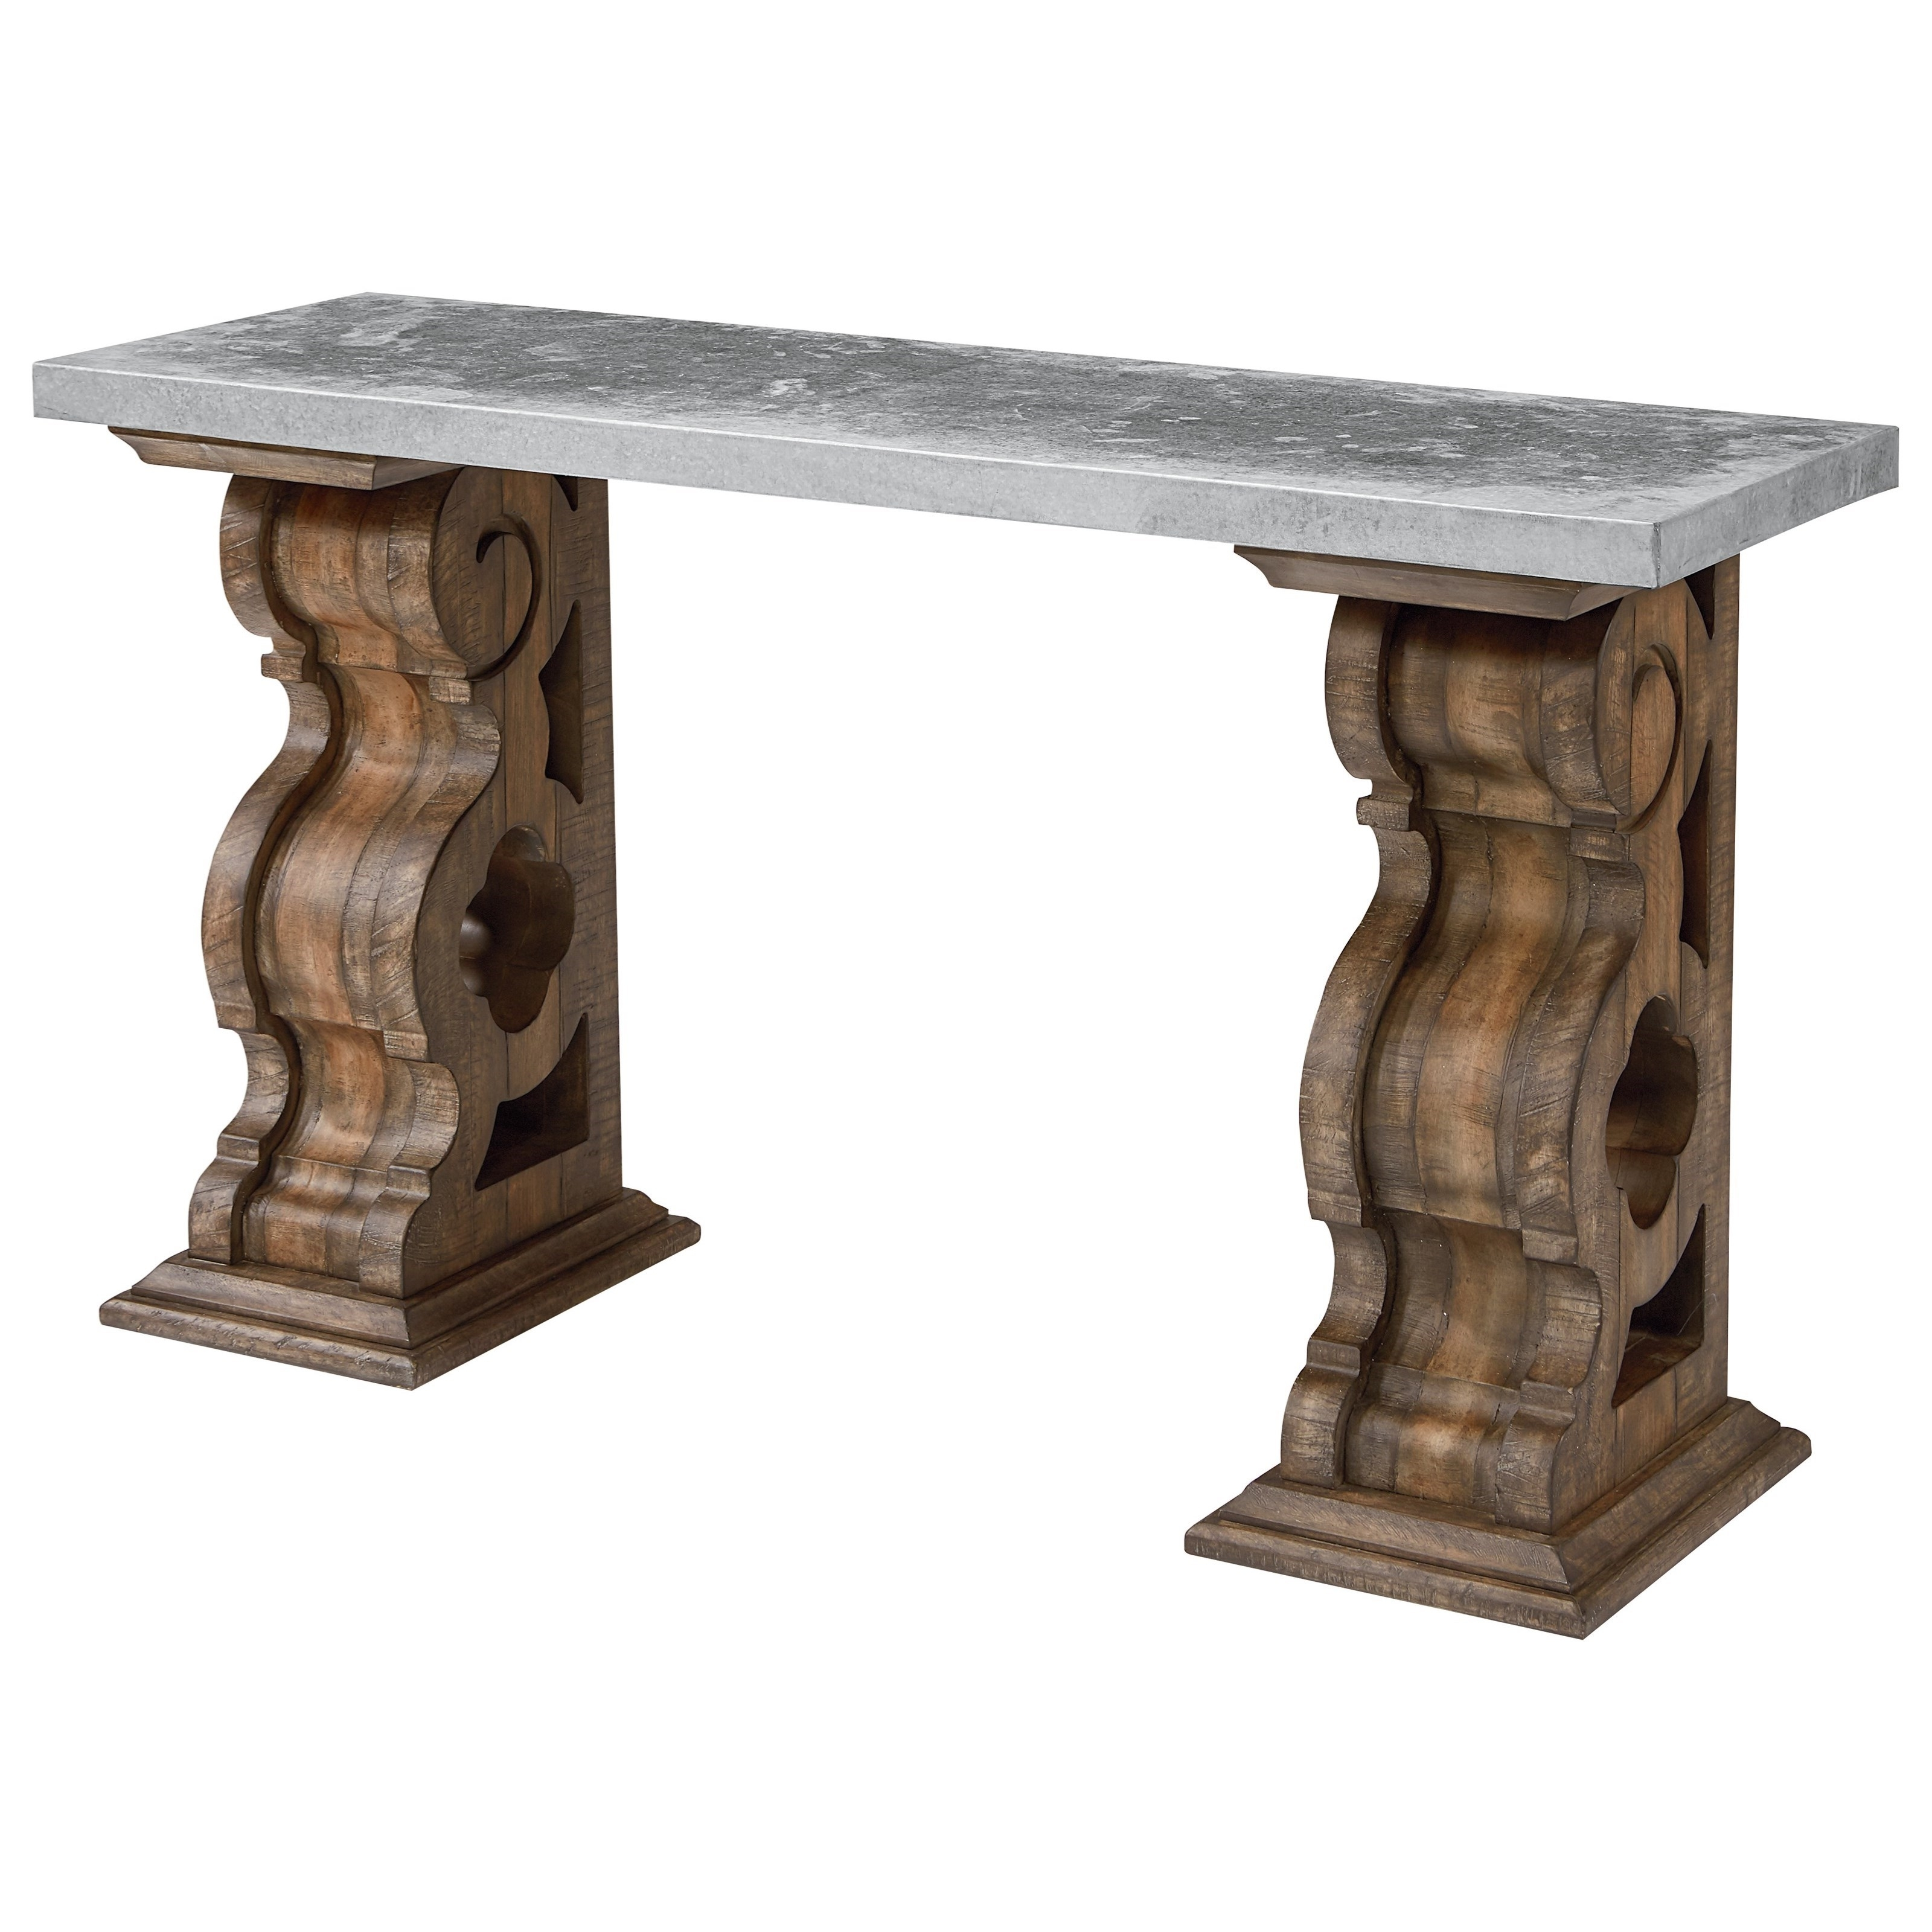 Magnolia Homejoanna Gaines Traditional Hall Table With Zinc Top Intended For 2017 Magnolia Home Ellipse Cocktail Tables By Joanna Gaines (View 11 of 20)